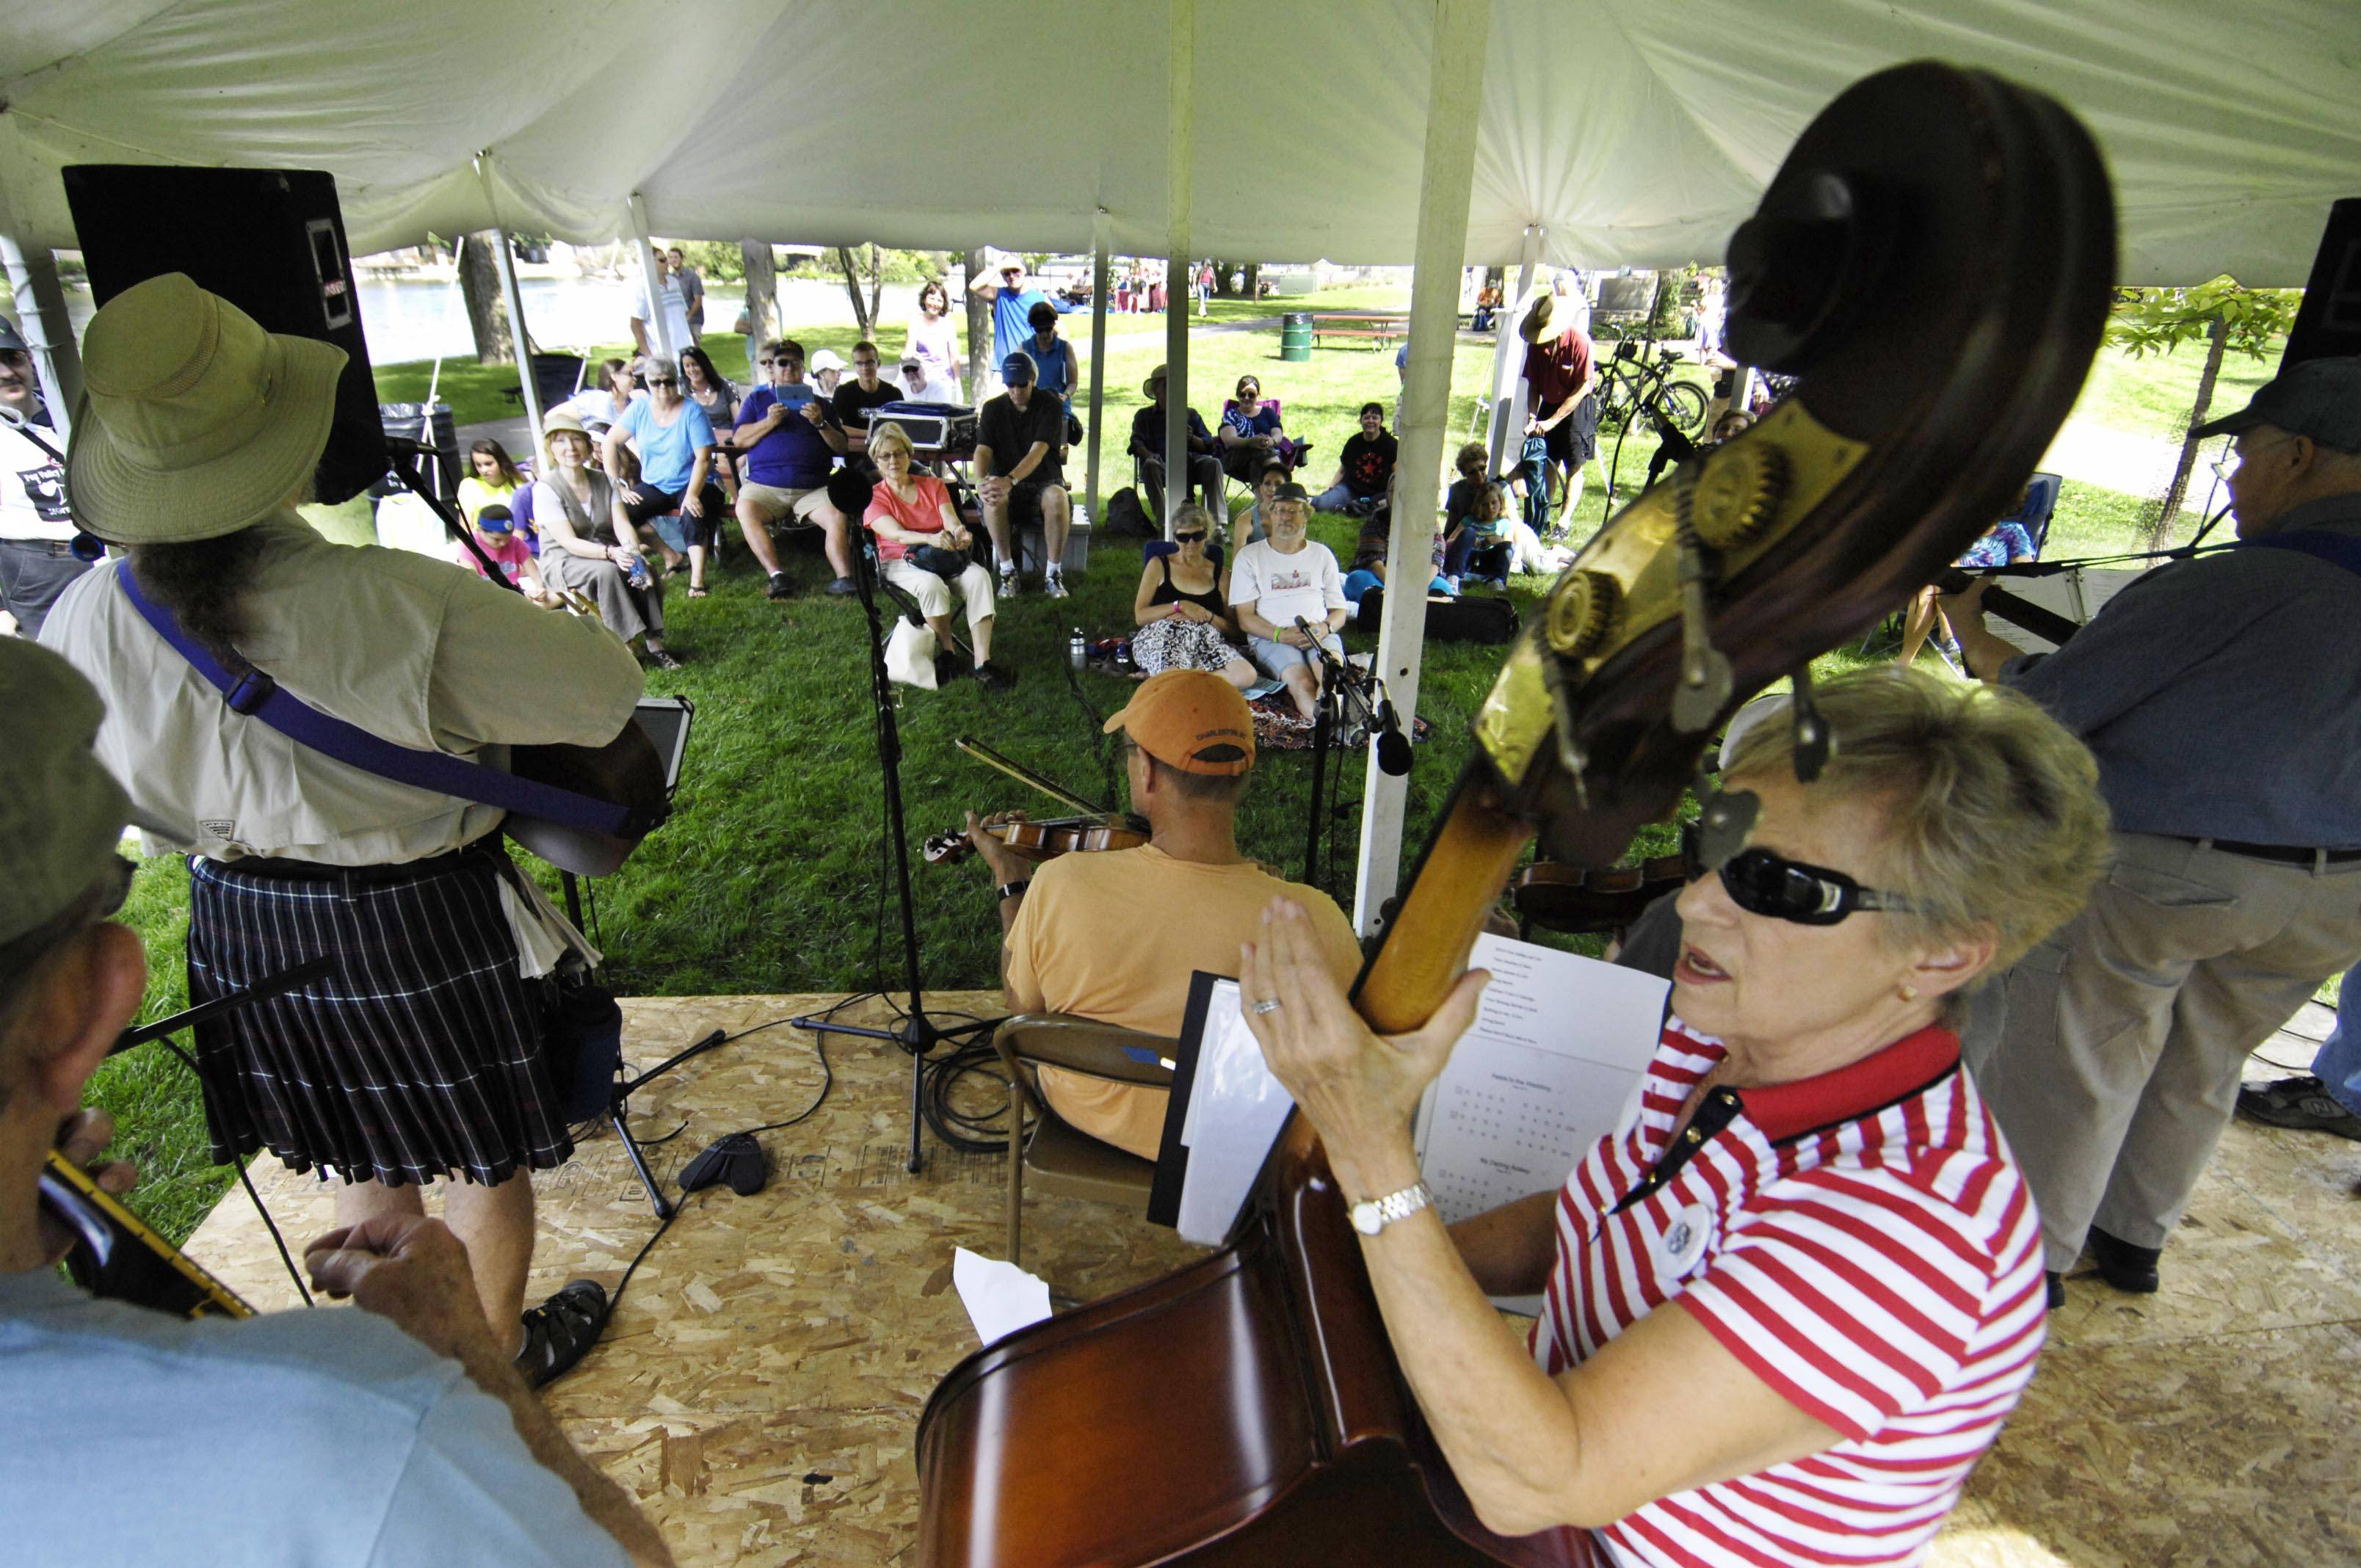 Members of The Plank Road Folk Song Society, including Jen Shilt on the Bass, perform for the crowd Sunday at the Fox Valley Folk Festival at Island Park in Geneva. The festival continues from 11 a.m. to 6 p.m. Monday.